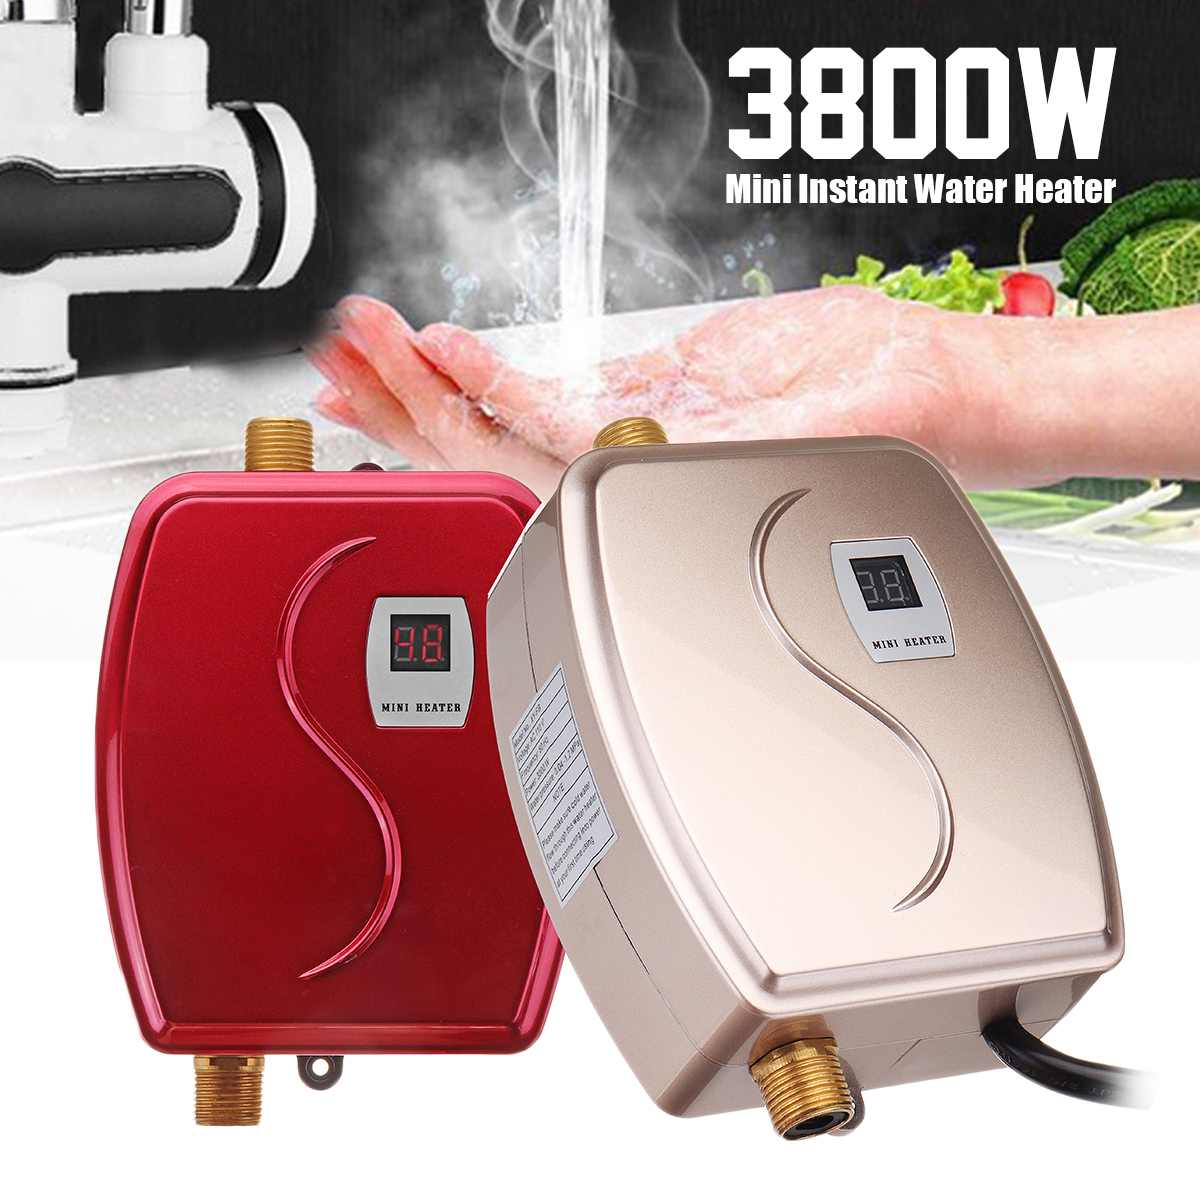 3800W Mini Tankless Instant Hot Water Heater Faucet kitchen Heating Thermostat US/EU Plug Intelligent Energy Saving Waterproof(China)